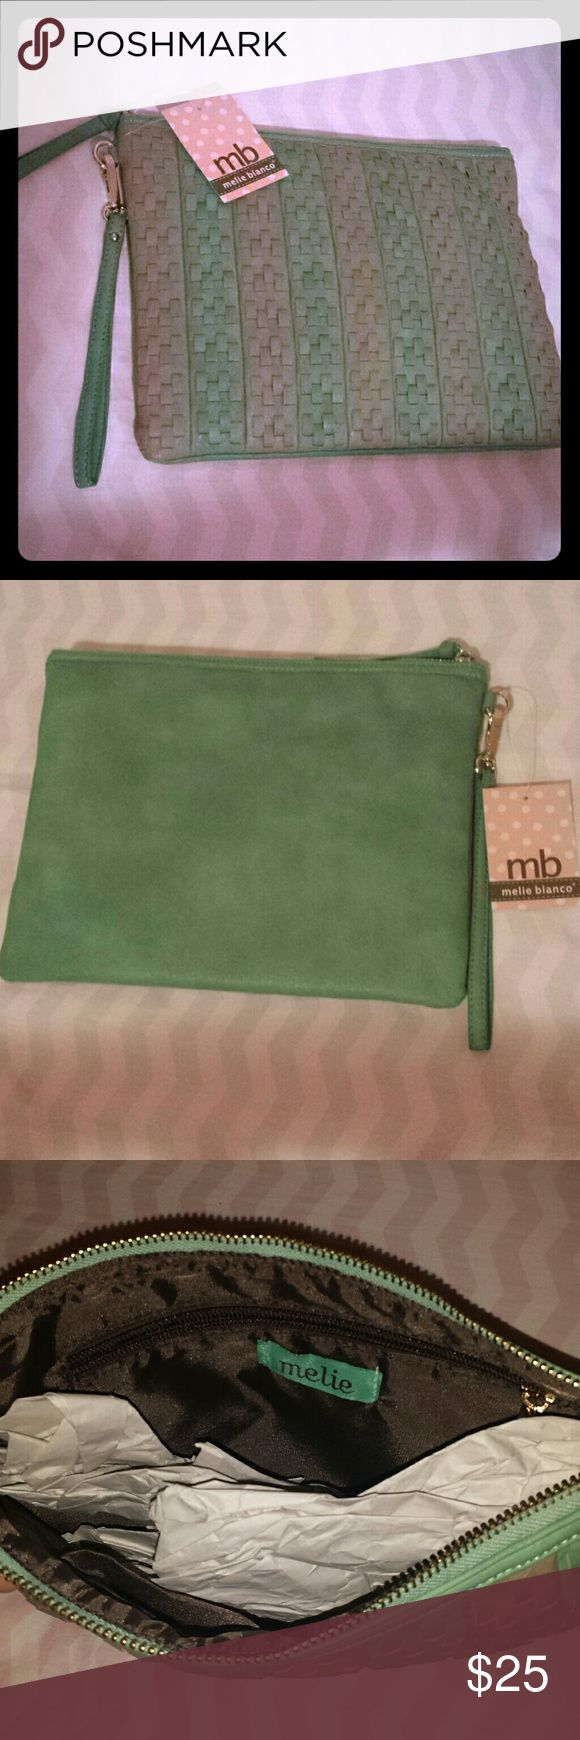 Melie Bianco Clutch Gray and mint green fashionable Melie Bianco clutch. Has 3 pockets inside and is very roomy. Brand new. Melie Bianco Bags Clutches & Wristlets